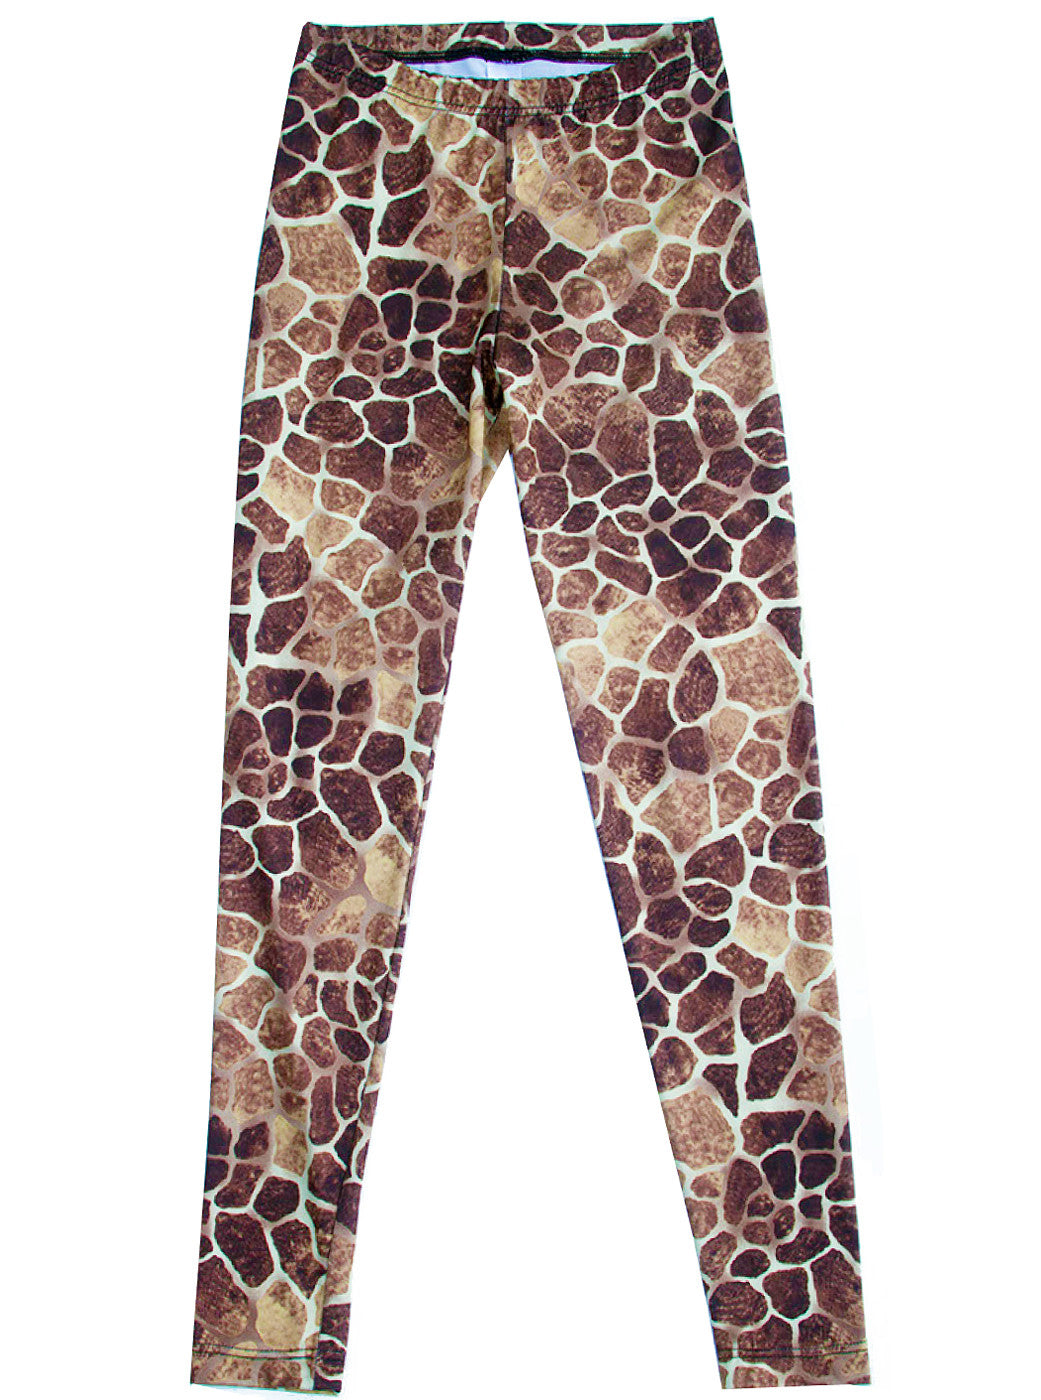 bcf35b8ec49e6 Home > Products > Giraffe Animal Print Spandex Leggings